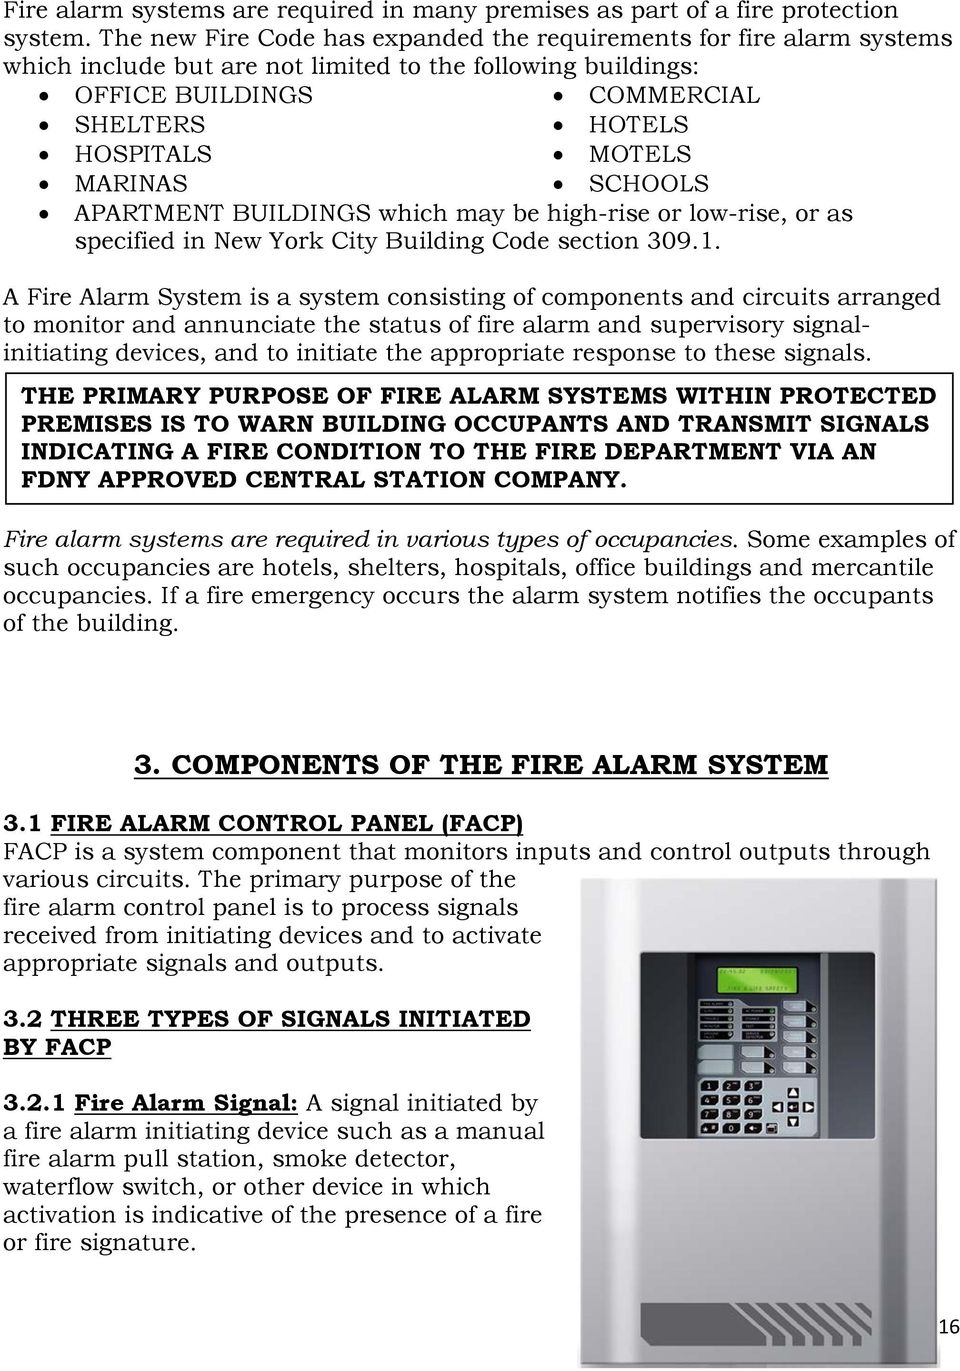 fire alarm system requirements